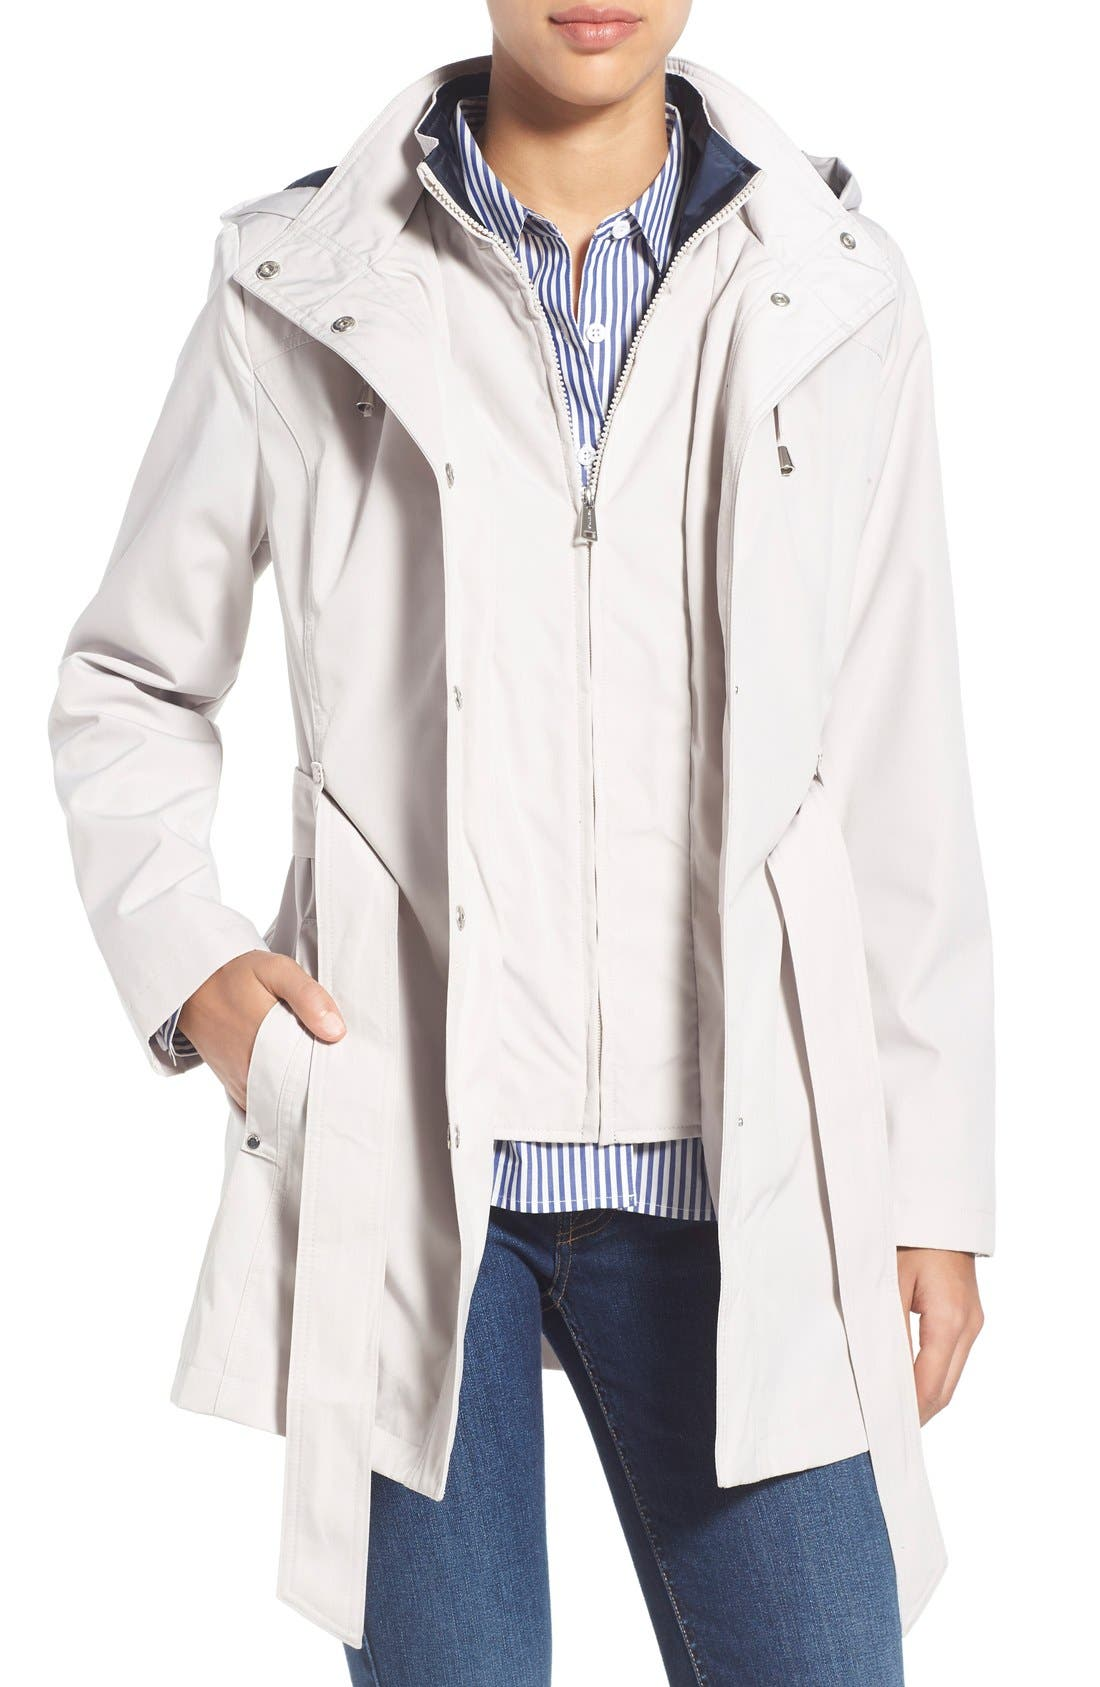 Main Image - Nautica Belted Raincoat with Inset Bib